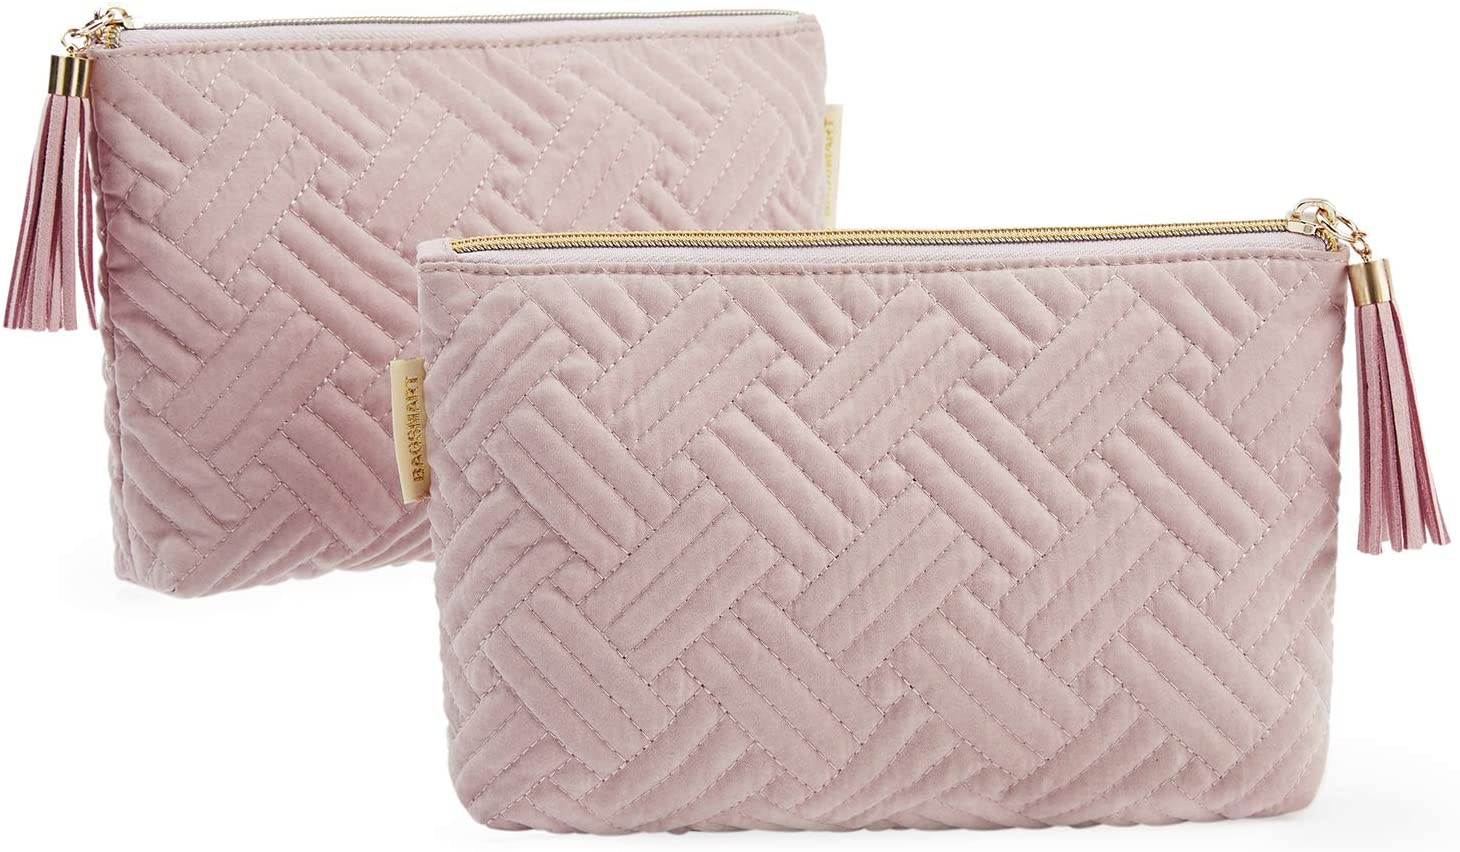 BAGSMART Cosmetic Bag 2 Pcs Small Makeup Bag for Purse Travel Cosmetic Pouch for Makeup Brushes Lipsticks Electonic Accessories, Pink+Pink